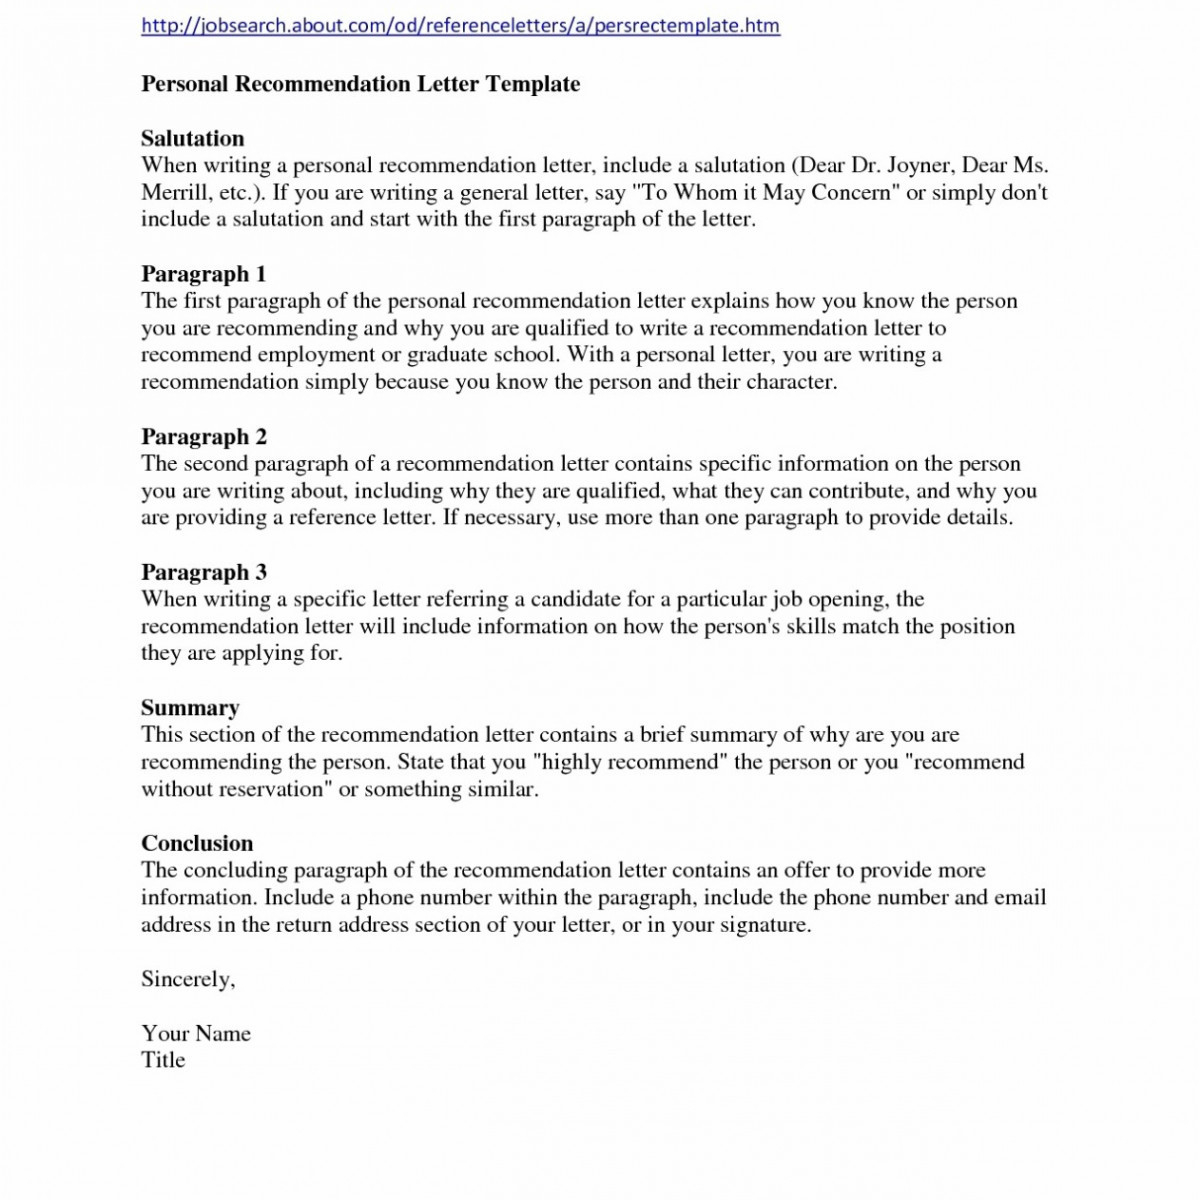 Resume Template for Graduate Students - Resume It Amazing Pr Resume Template Elegant Dictionary Template 0d